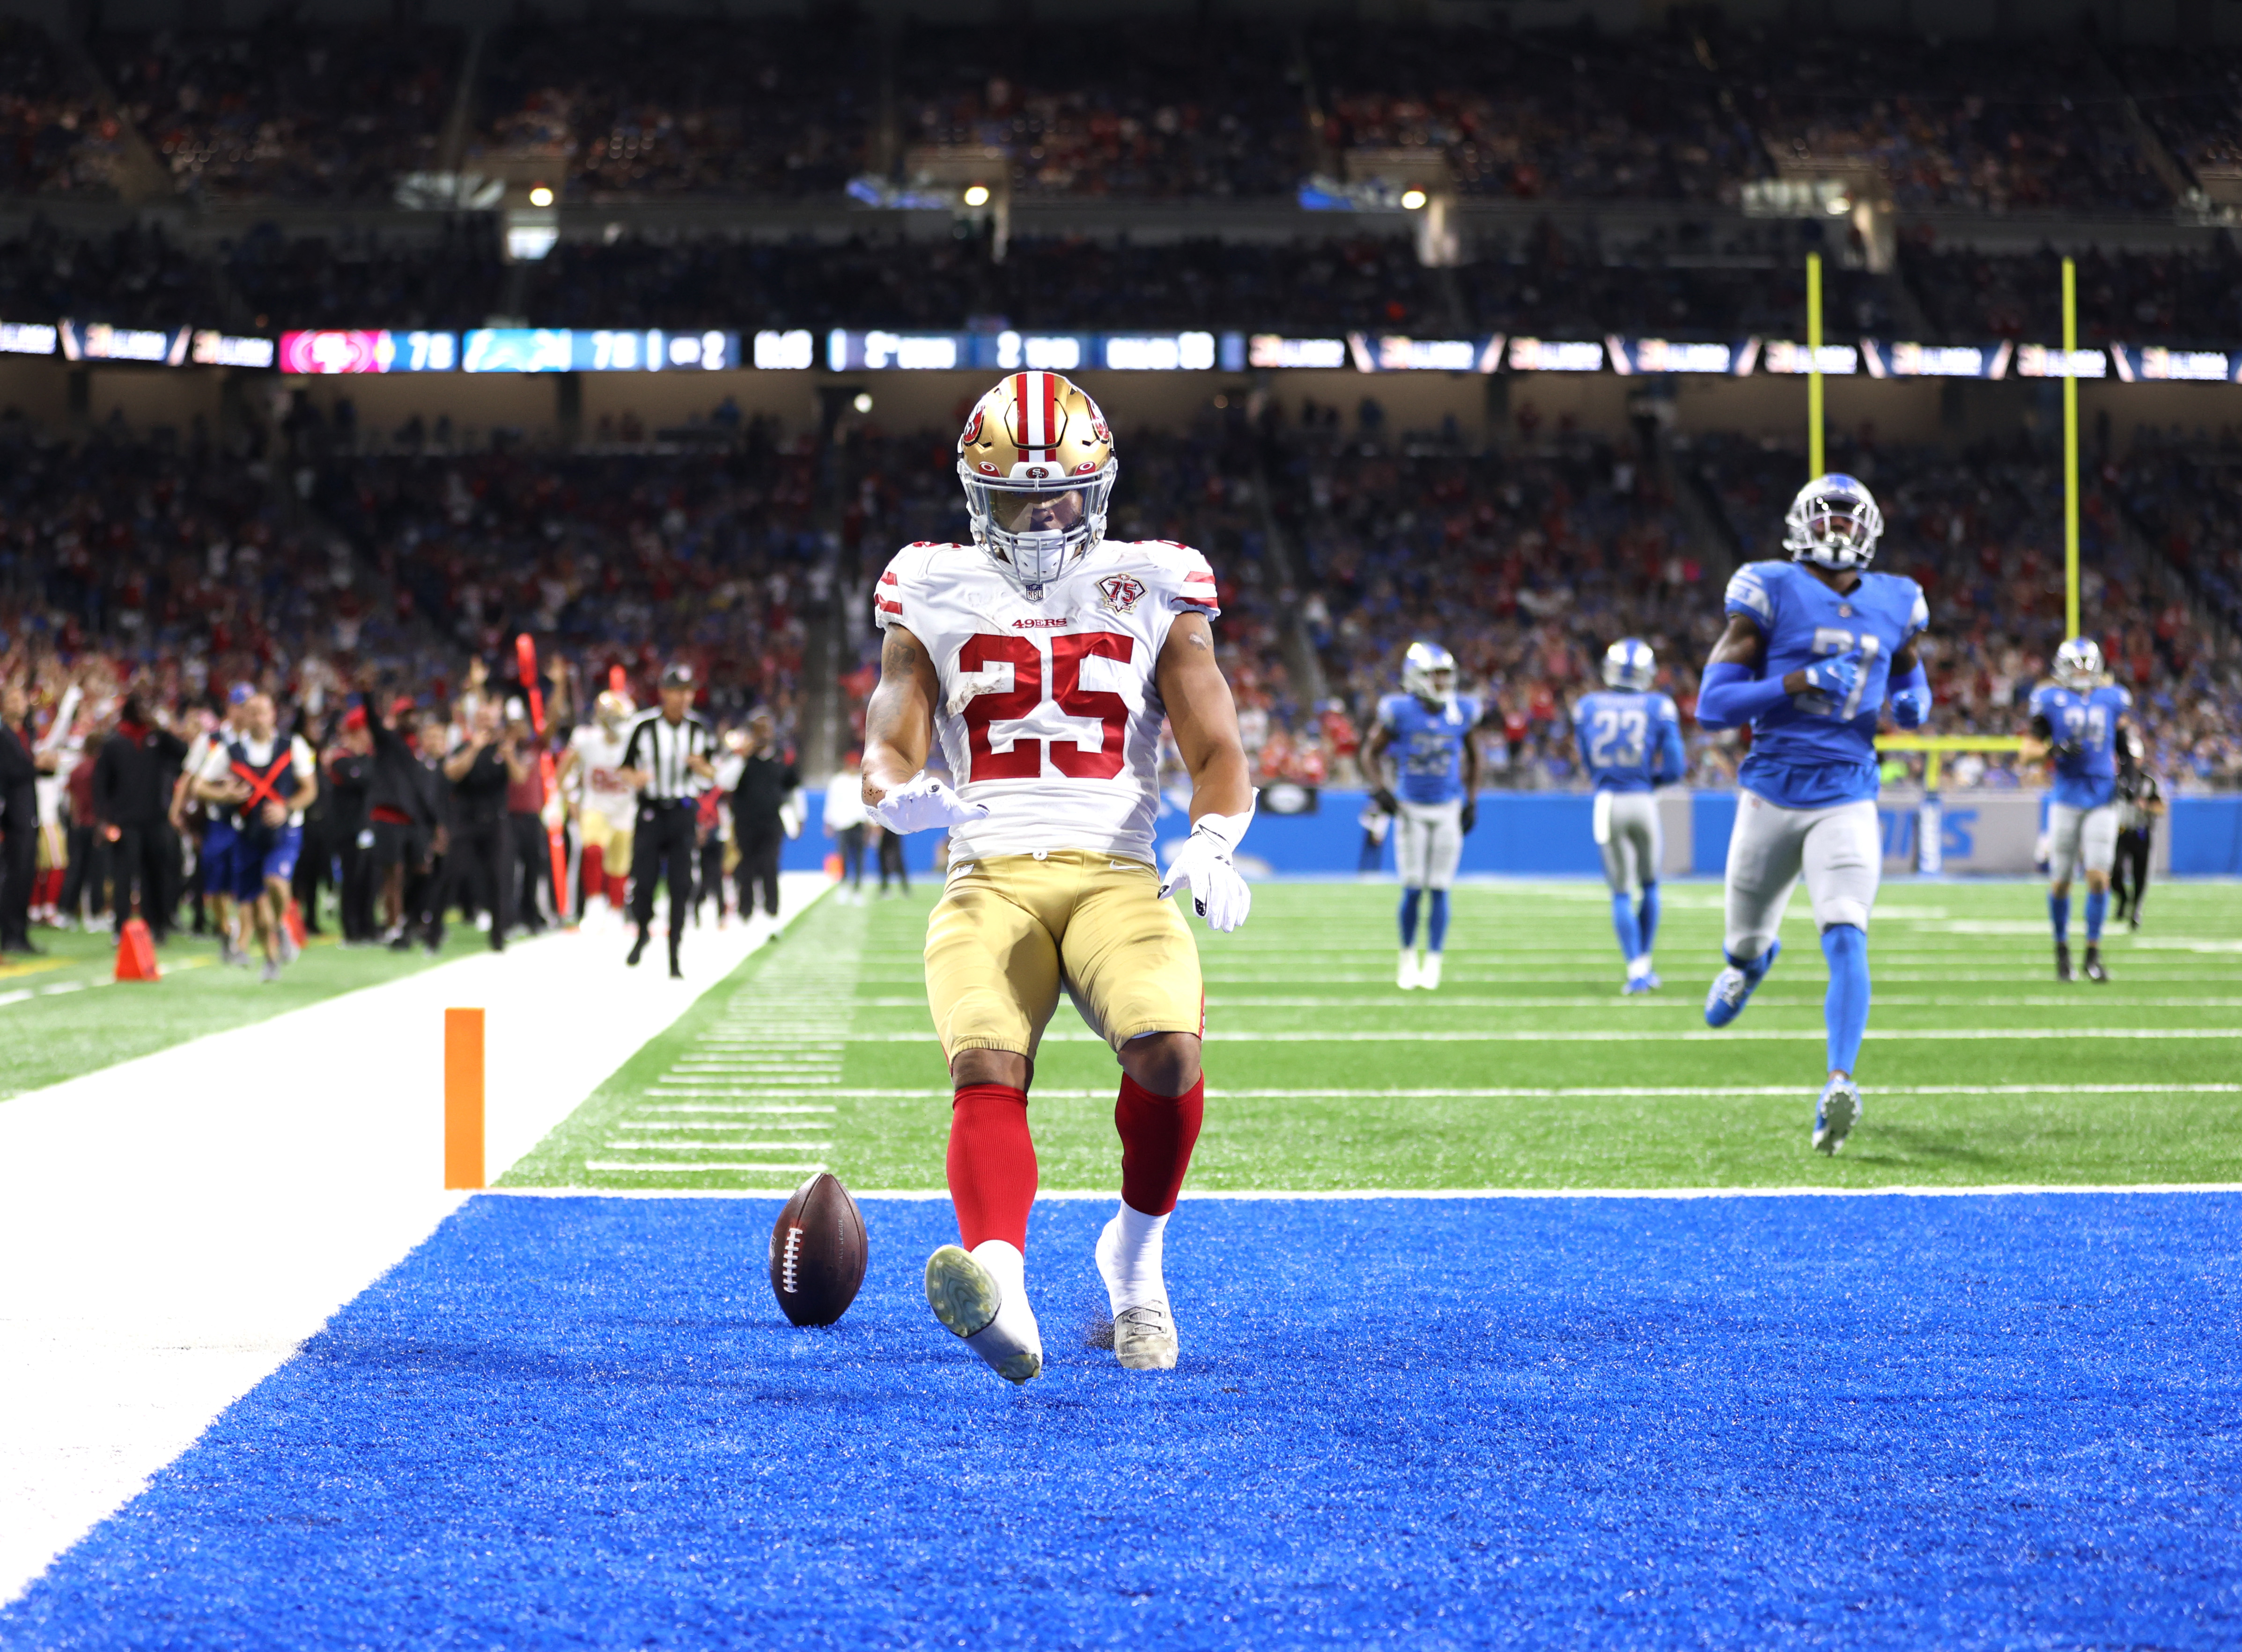 Elijah Mitchell #25 of the San Francisco 49ers celebrates his 38-yard rushing touchdown against the Detroit Lions during the second quarter at Ford Field on September 12, 2021 in Detroit, Michigan.